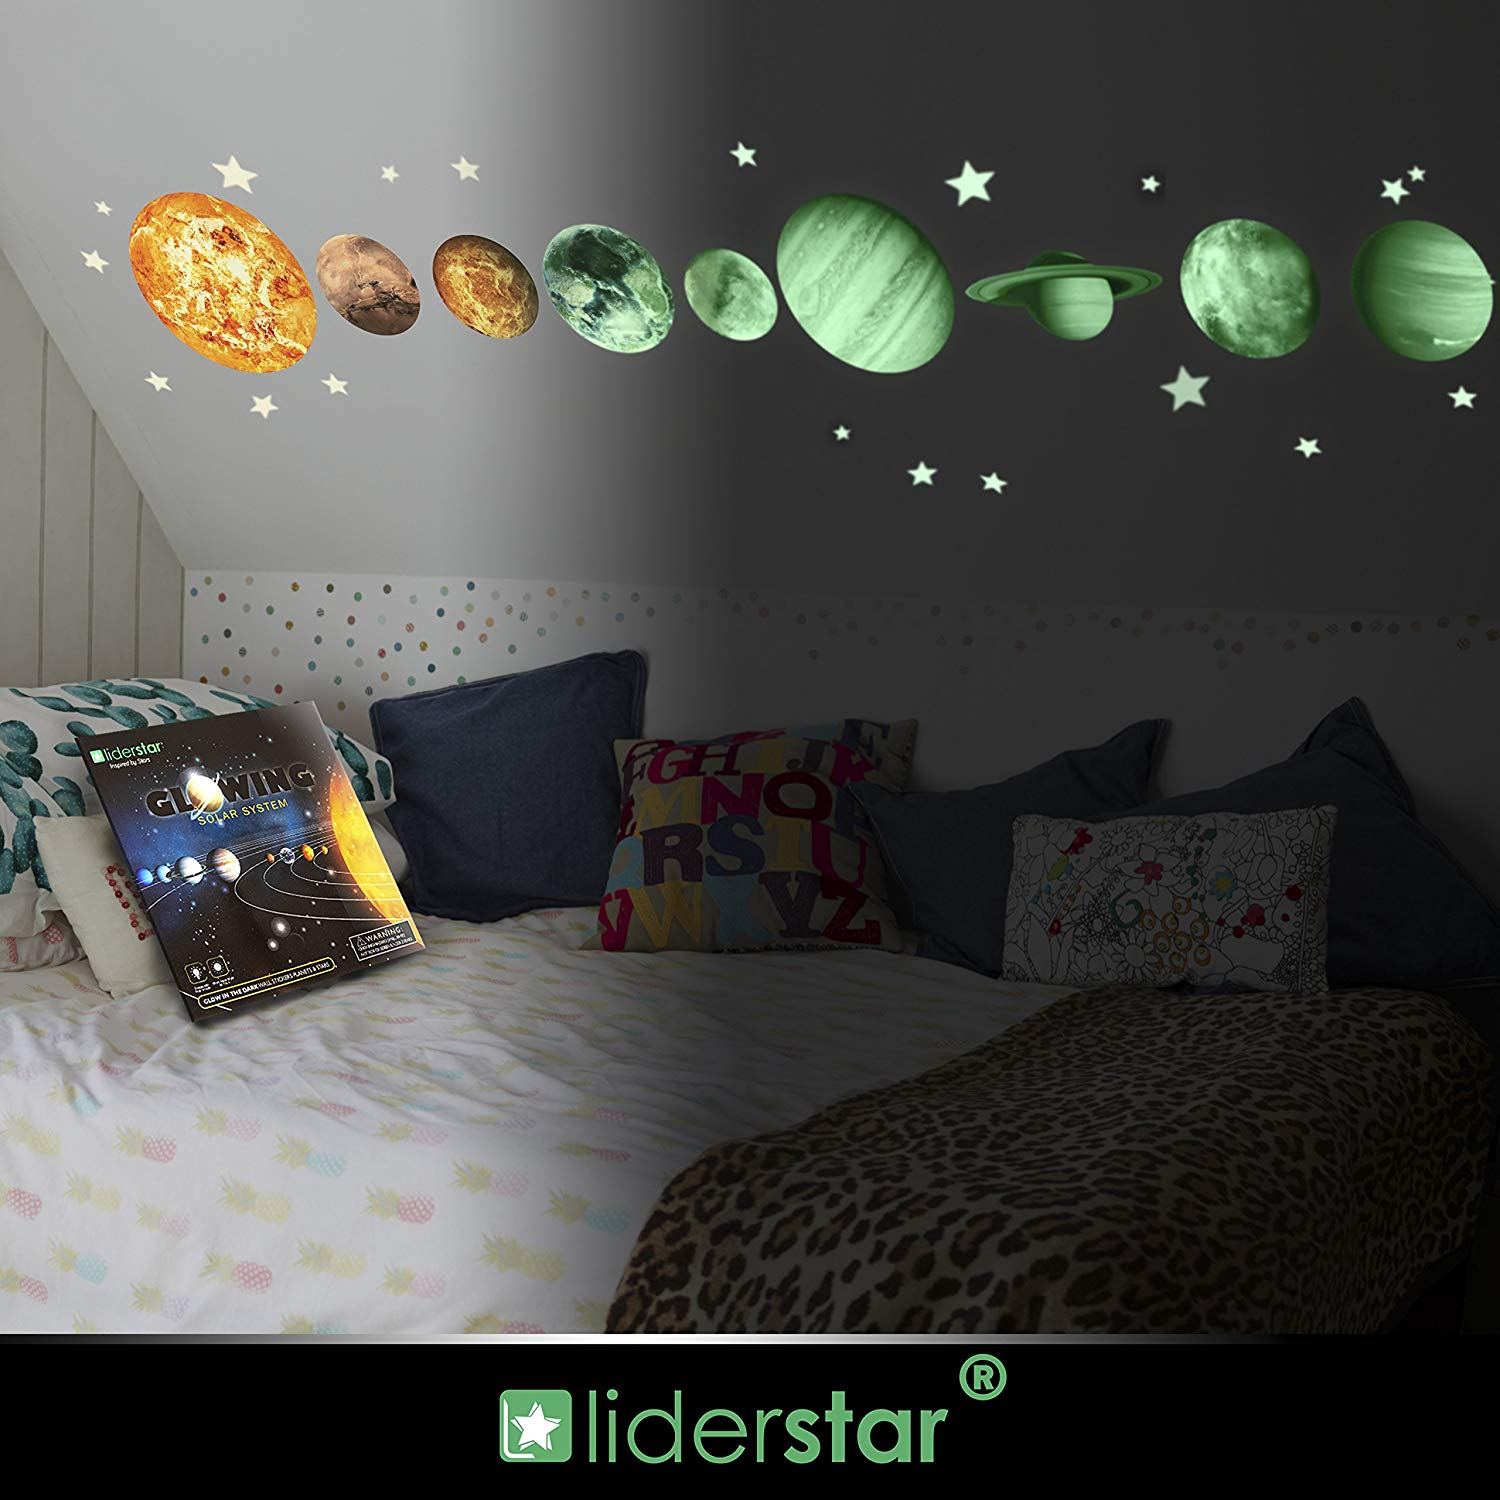 Glow in the dark Stars and Planets Glowing wall stickers Image